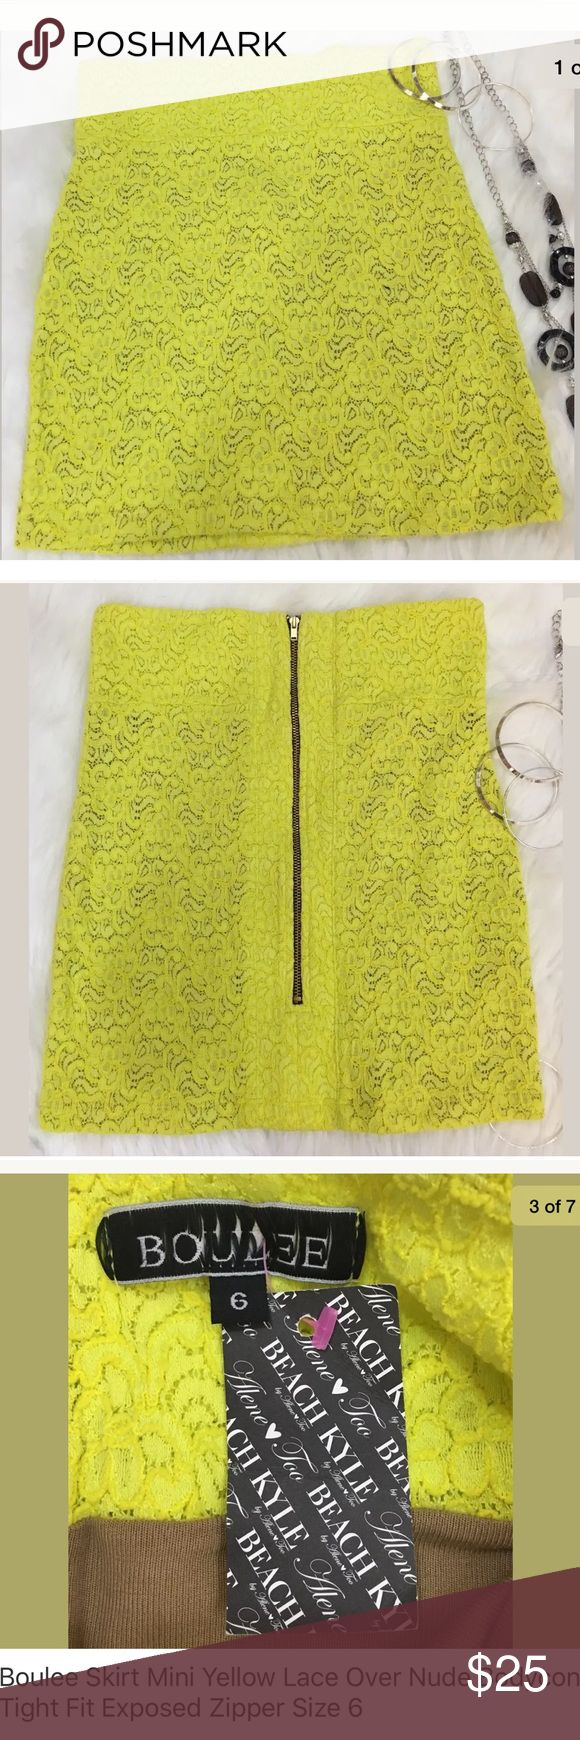 """Boulee Skirt Mini Scuba Yellow Lace Exposed Zip Boulee Mini Skirt  Yellow Lace Over Nude  Bodycon  Tight Form Fit  Exposed Zipper  Scuba Style  Body conscious fit  Yellow Lace overlaying a solid lining  Made in the USA  Size 6  Please see my measurements below and please know your measurements prior to purchase  Lying Flat  Waist Side to Side: 13""""  Top of waist to bottom hem:16.5""""  MSRP $231 Boulee Skirts Mini"""